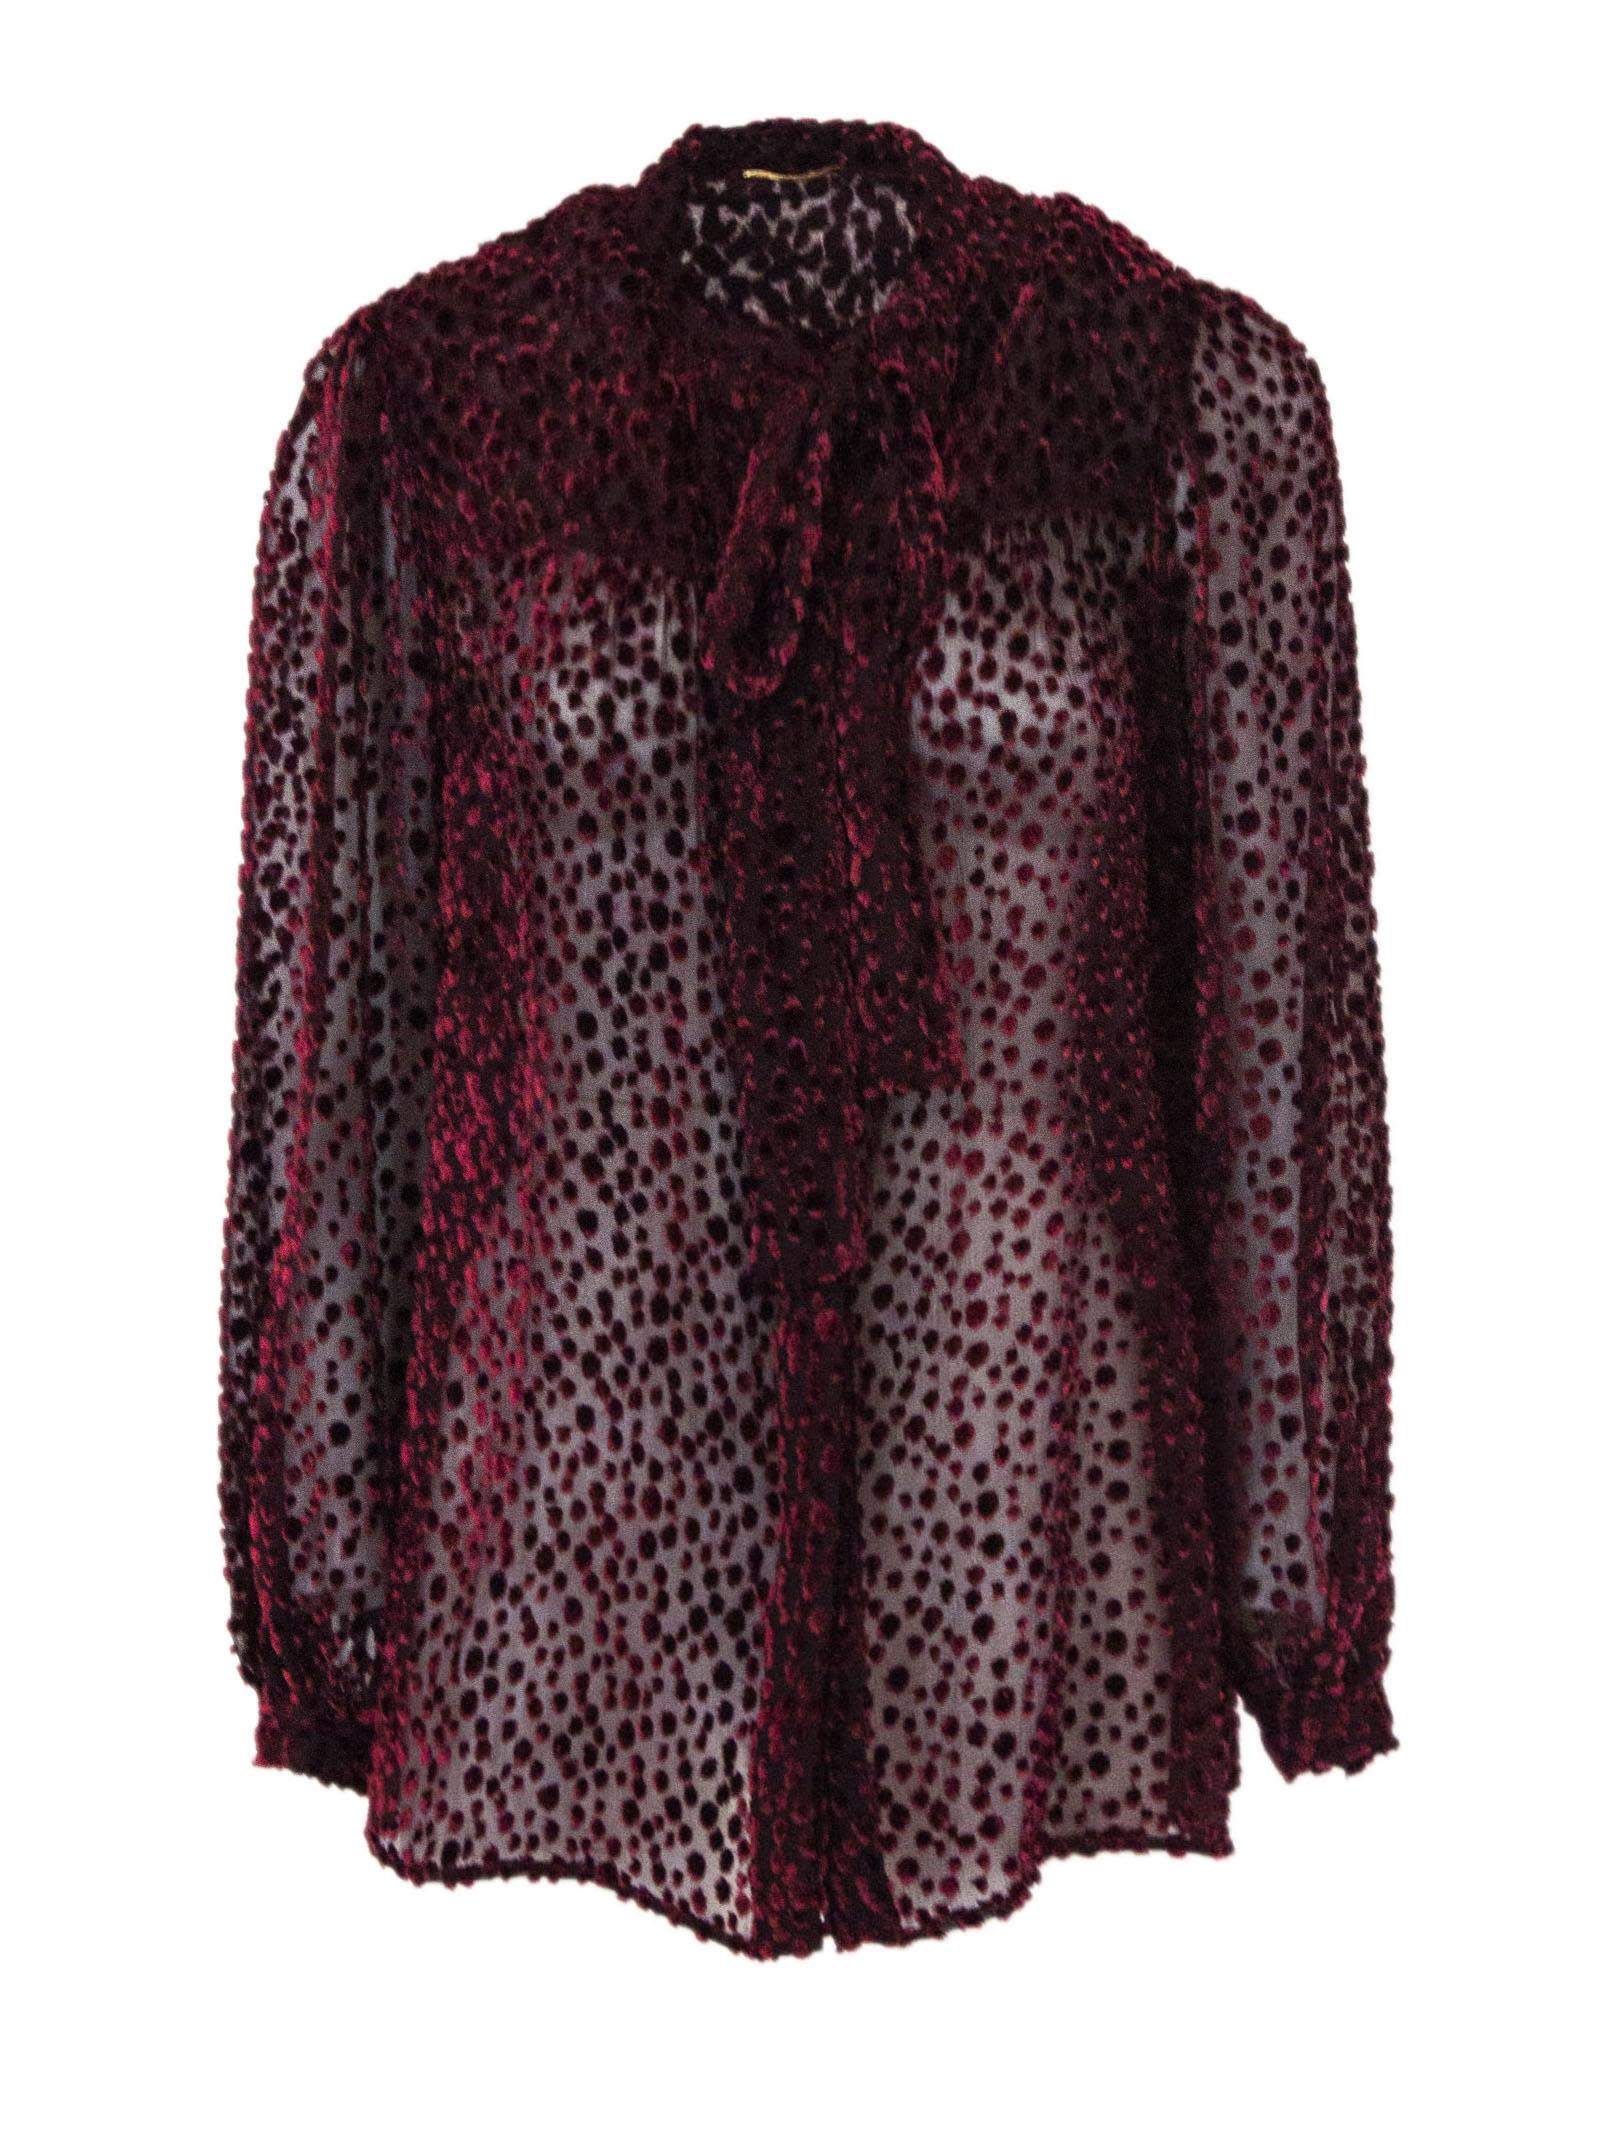 Saint Laurent Tie Blouse In Burgundy Dotted Velvet.